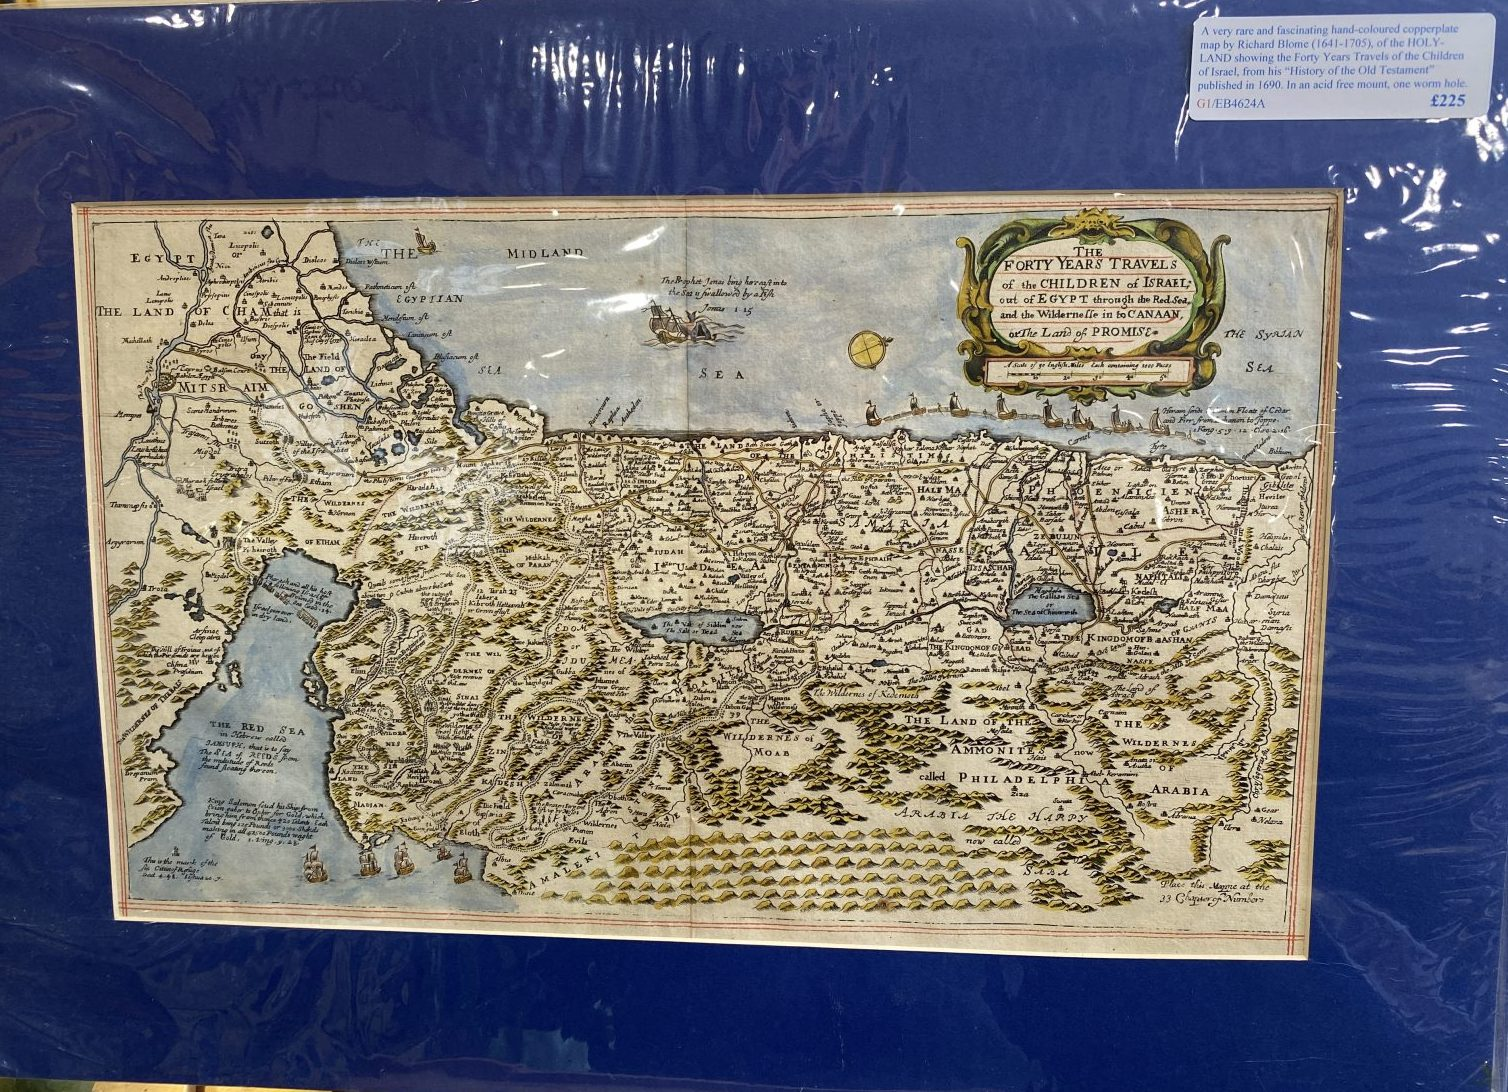 G1 - A very rare and fascinating hand-coloured copperplate map of the HOLY-LAND showing the Forty Years Travels of the Children of Israel, by Richard Blome (1641-1705).  From his History of the Old Testament published in 1690, one tiny worm hole. In an acid free mount ready for framing.  £225